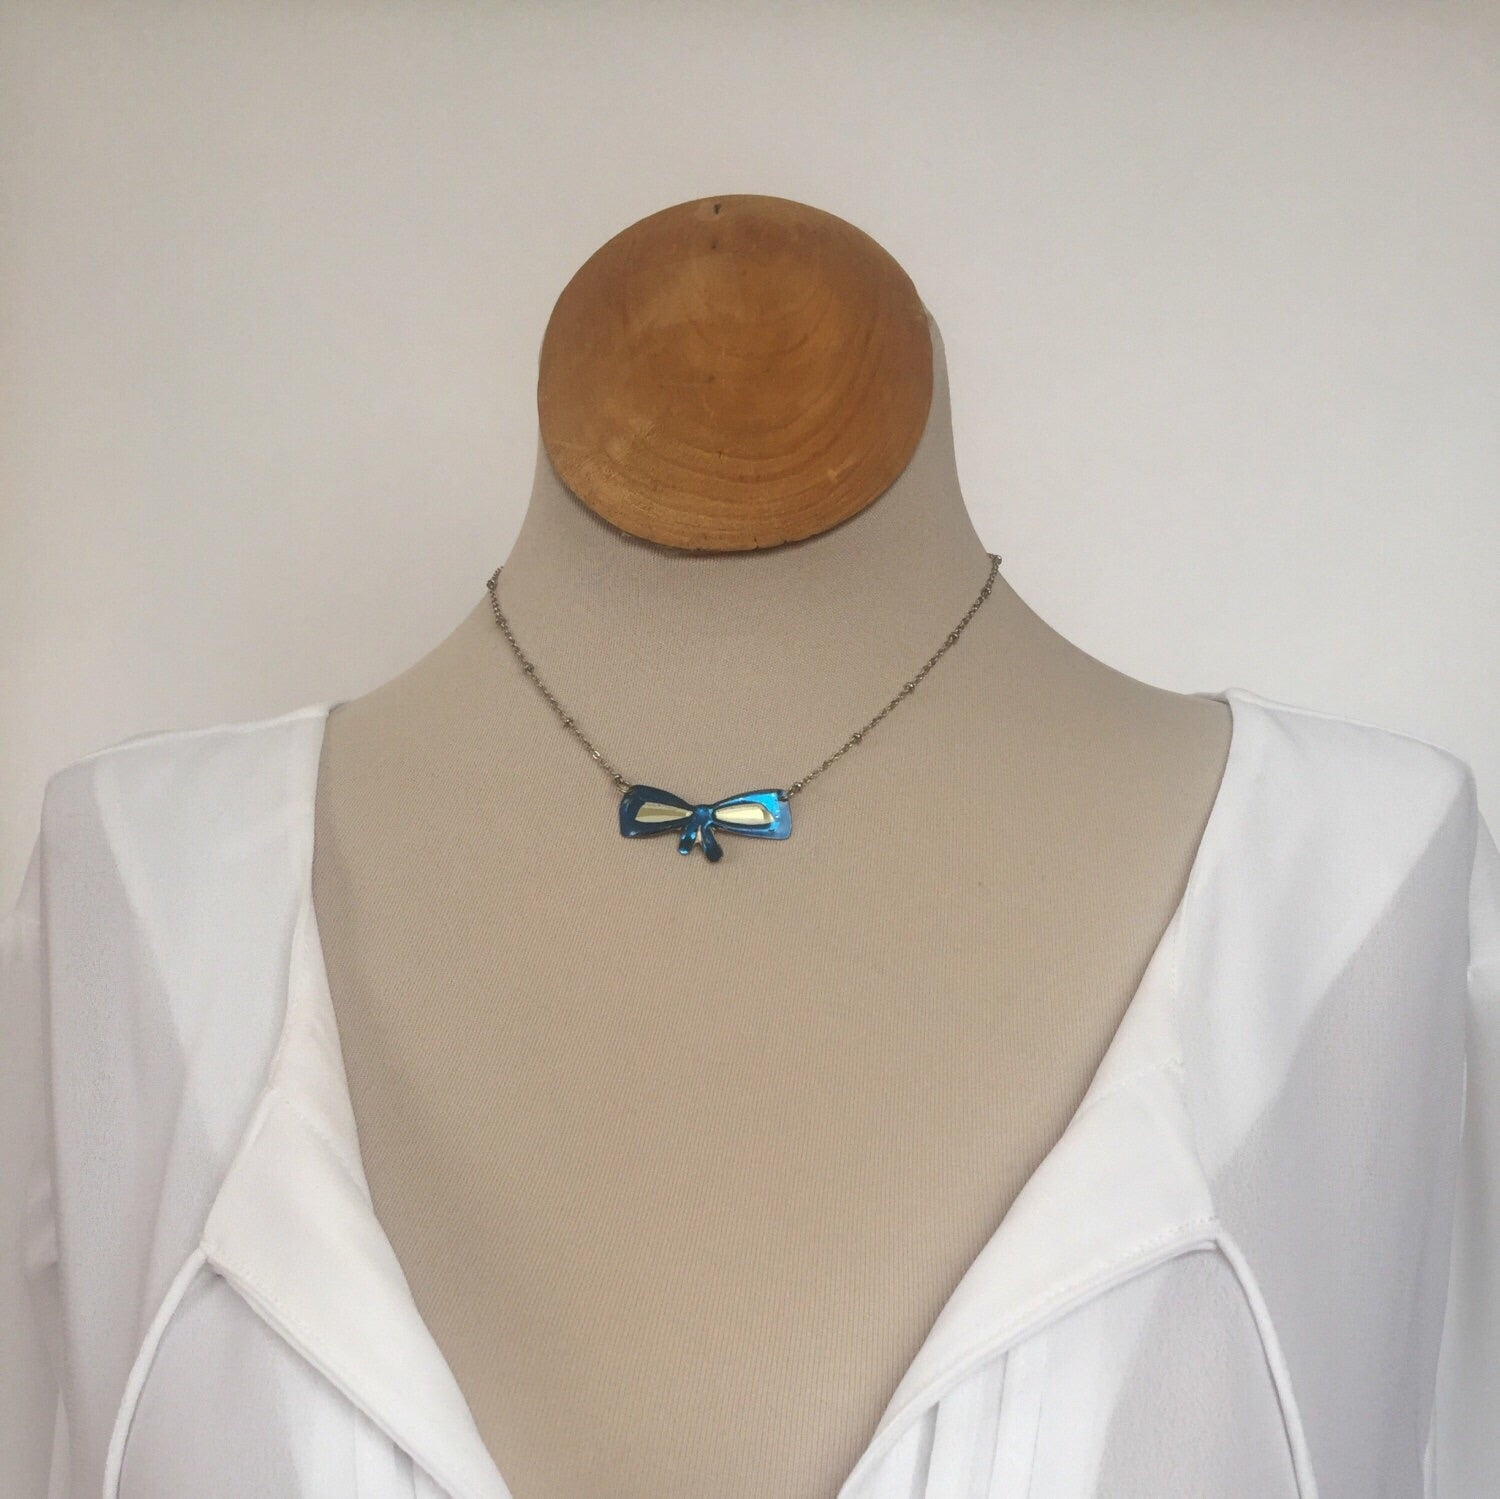 Vintage Tin Jewelry -  Blue Bow Choker Necklace on model short length